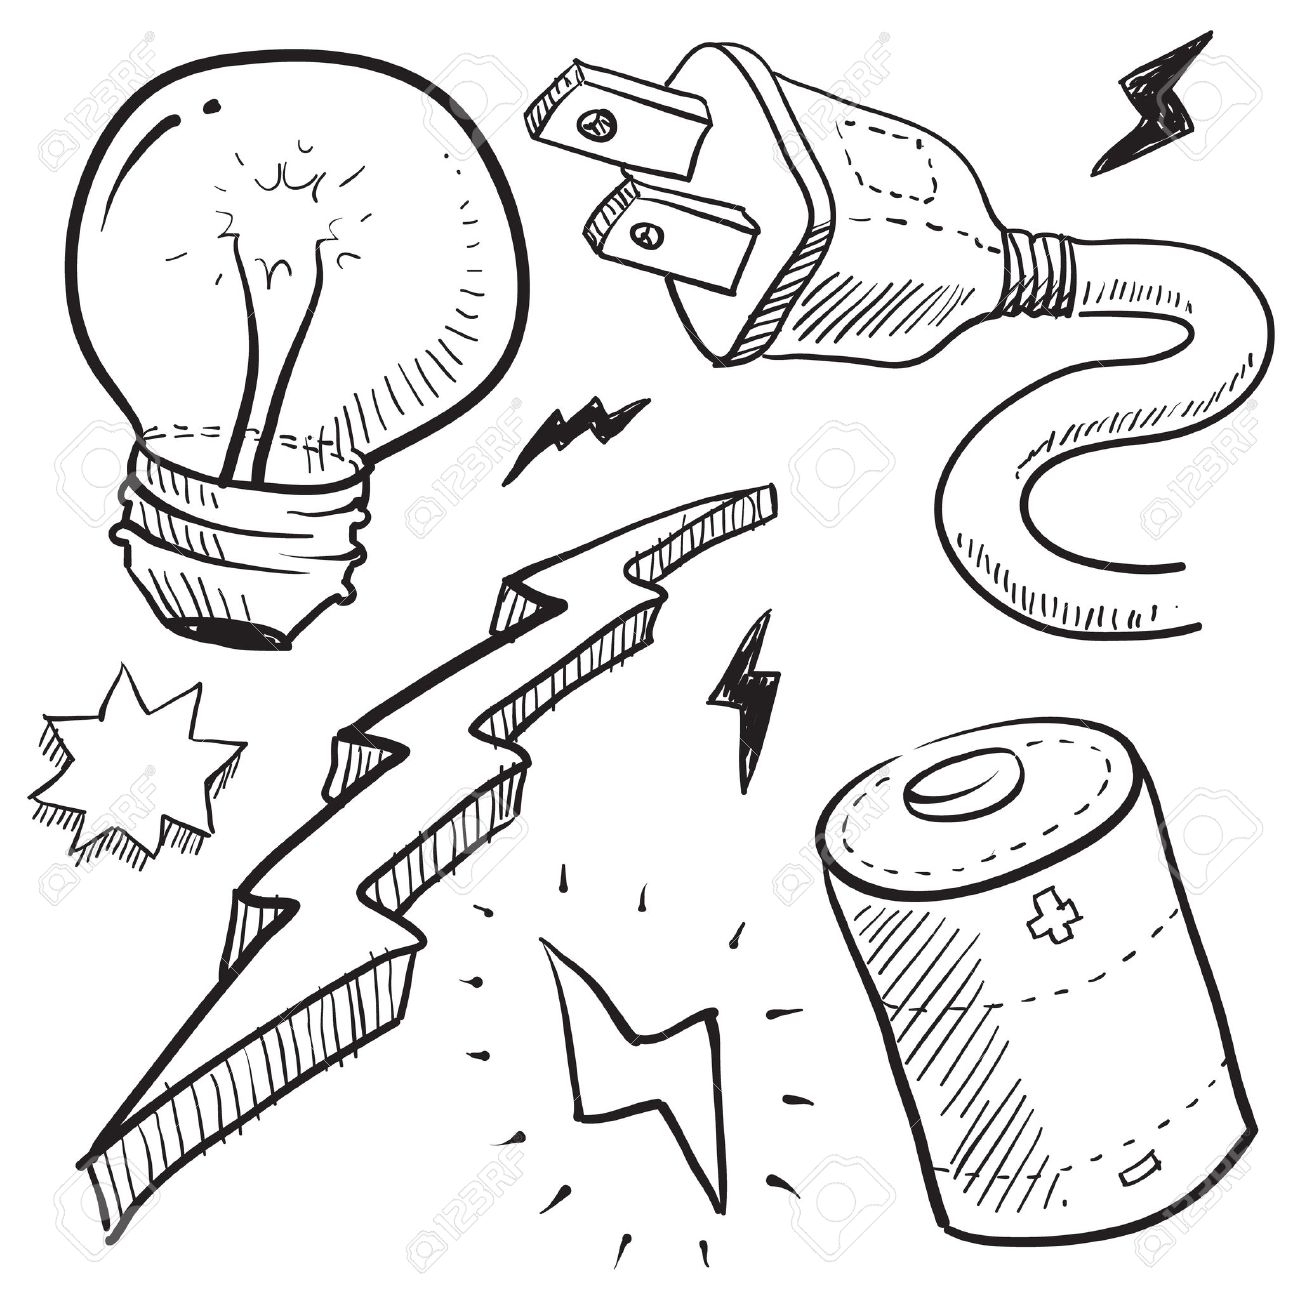 Power Plug Drawing Style Electricity or Power